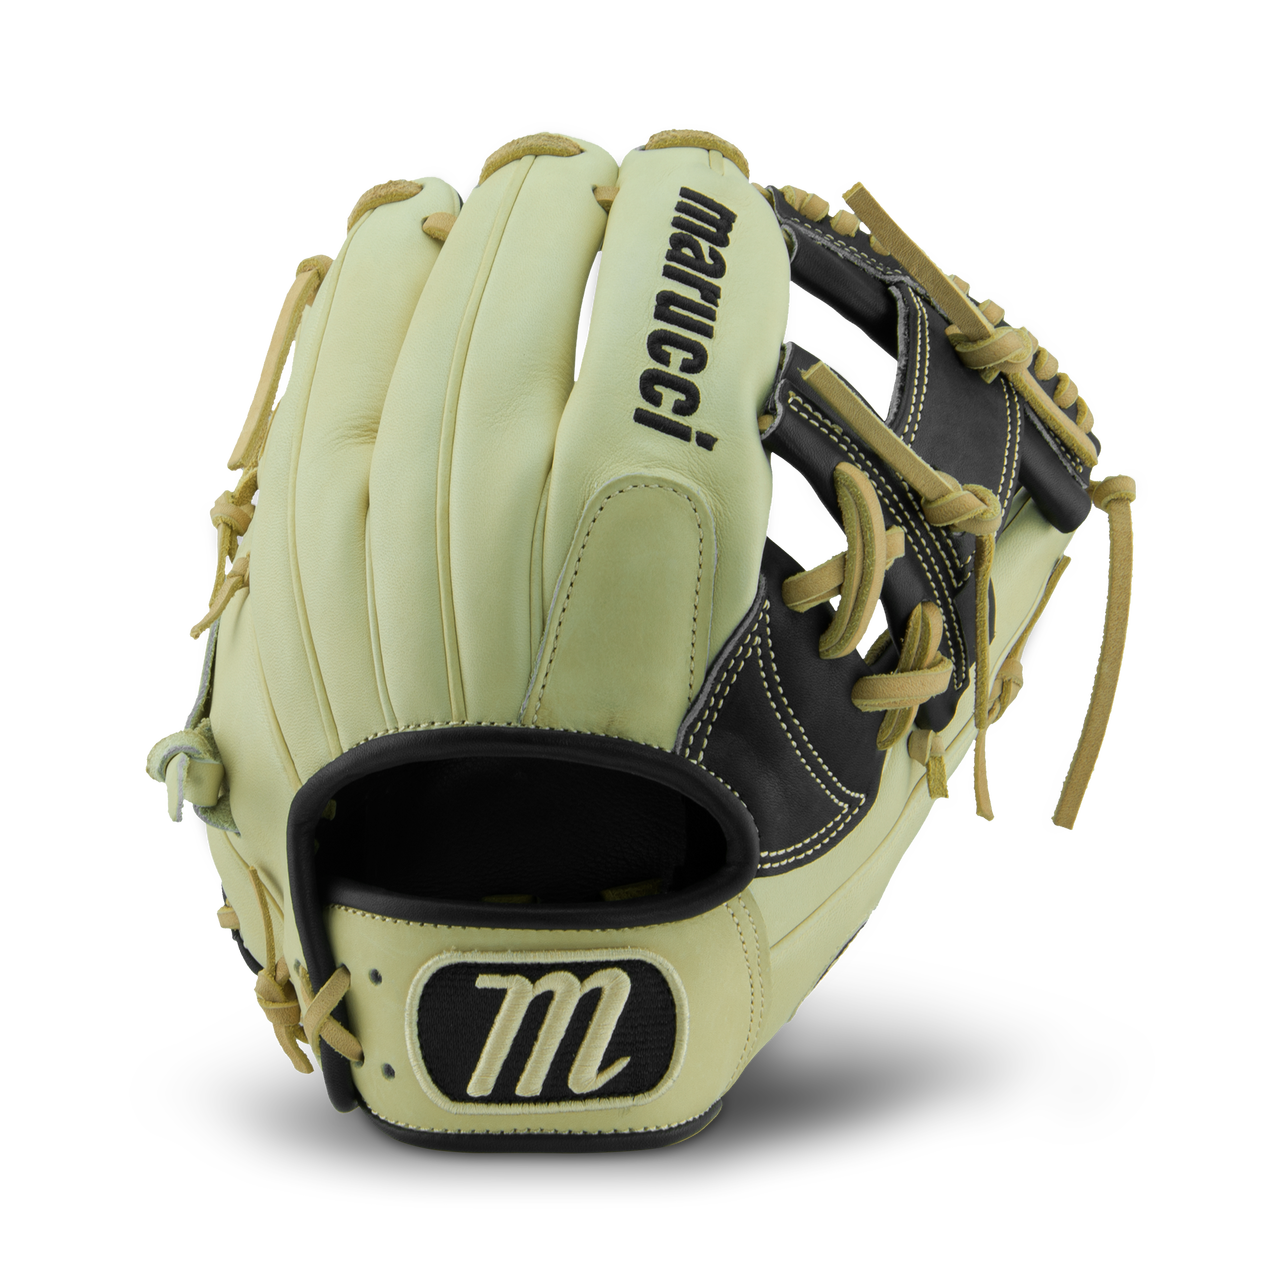 marucci-founders-11-5-i-web-baseball-glove-right-hand-throw MFGFS1150I-RightHandThrow Marucci 849817055991 Constructed with premium Japanese kip leather and an understanding of the